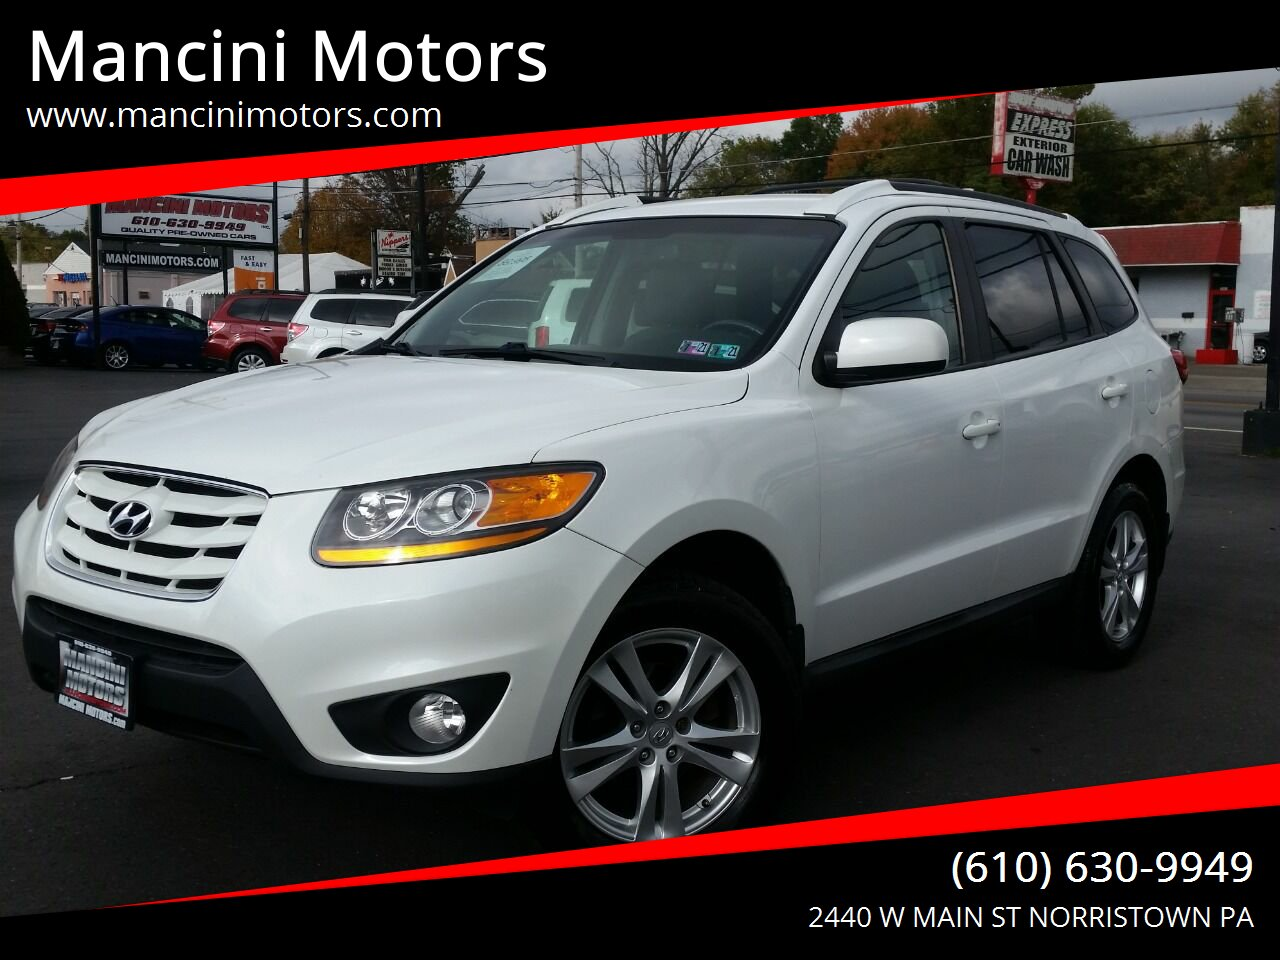 mancini motors in norristown pa carsforsale com mancini motors in norristown pa